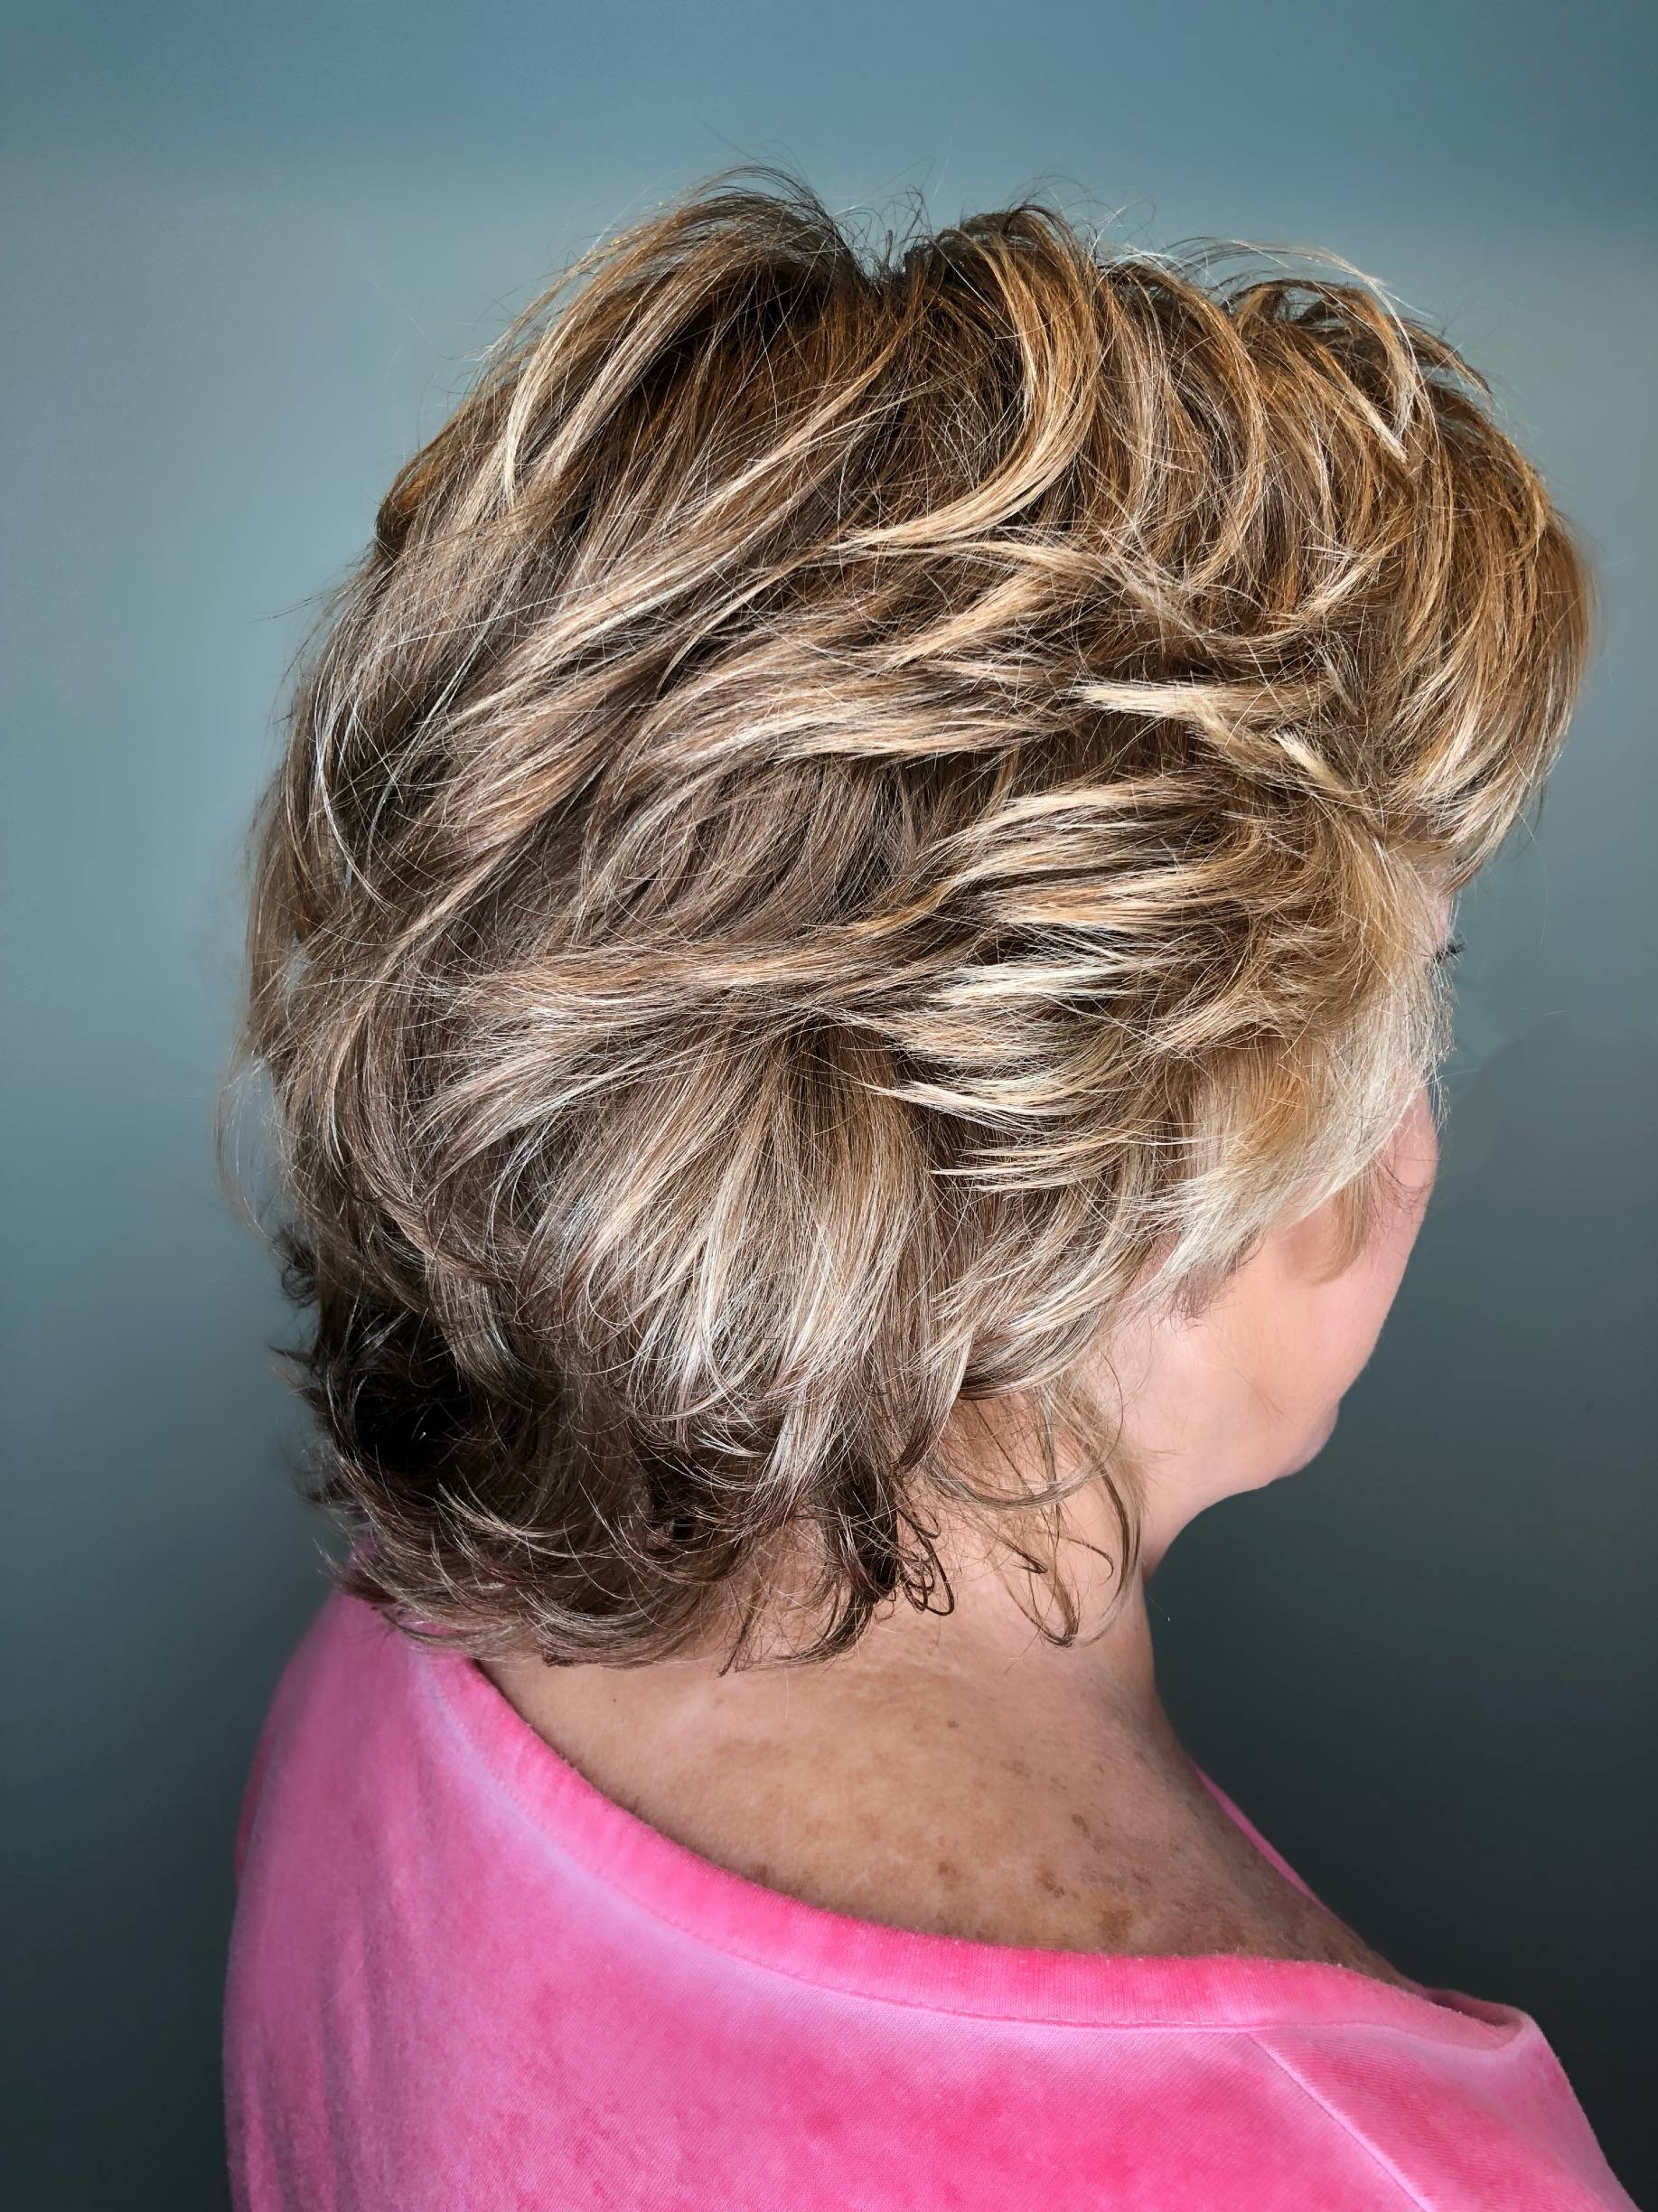 Organic perm with blonde highlights